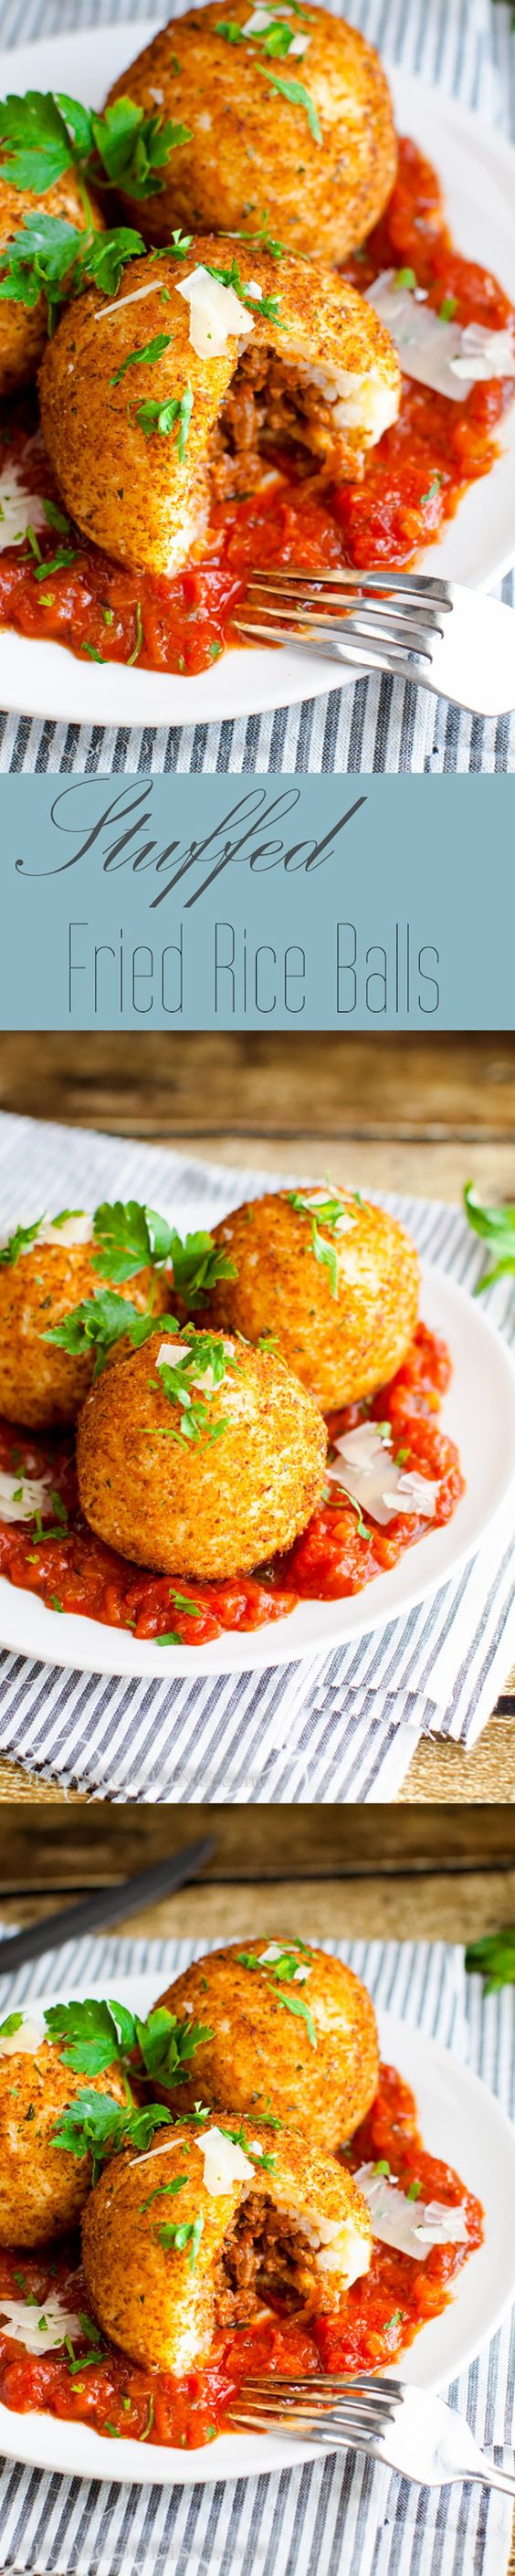 Stuffed Fried Rice Balls...2 in 1 meal that is delish!